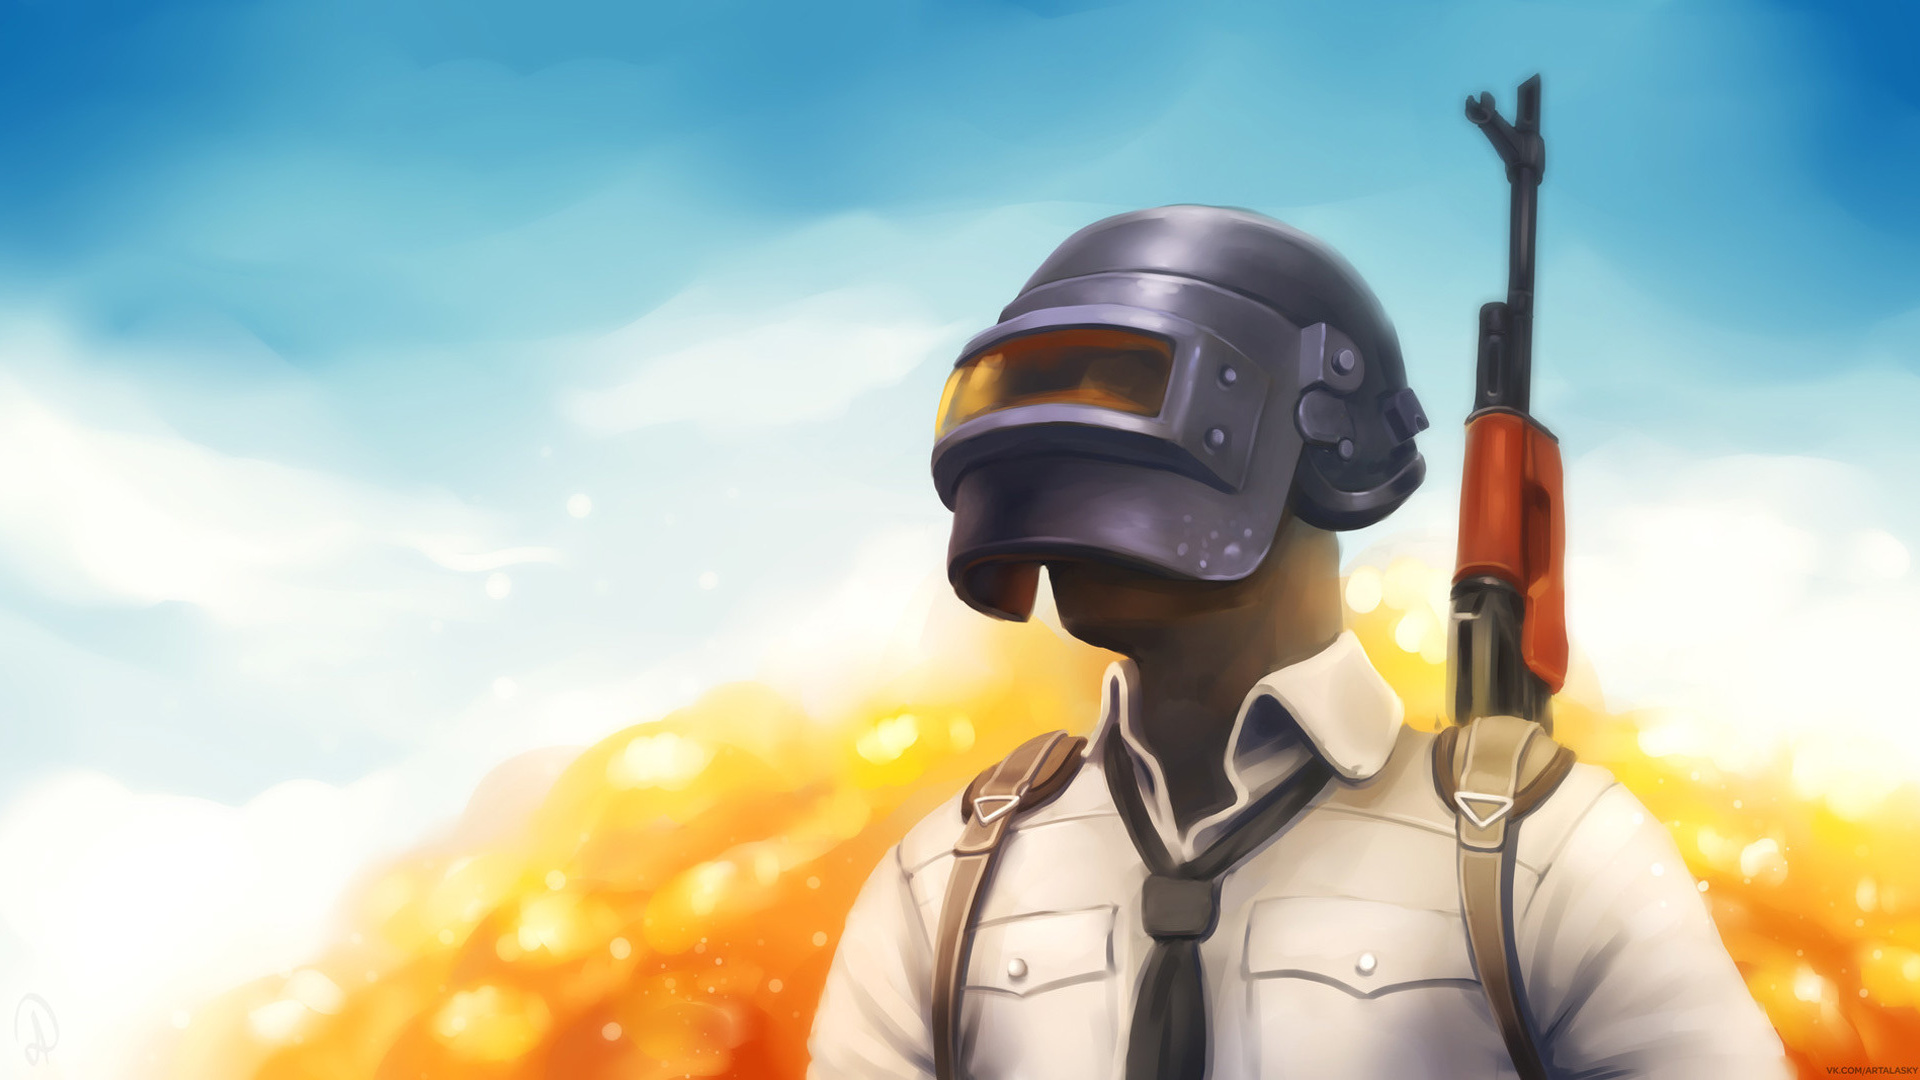 Pubg Wallpaper 1920x1080 Hd Posted By Christopher Anderson